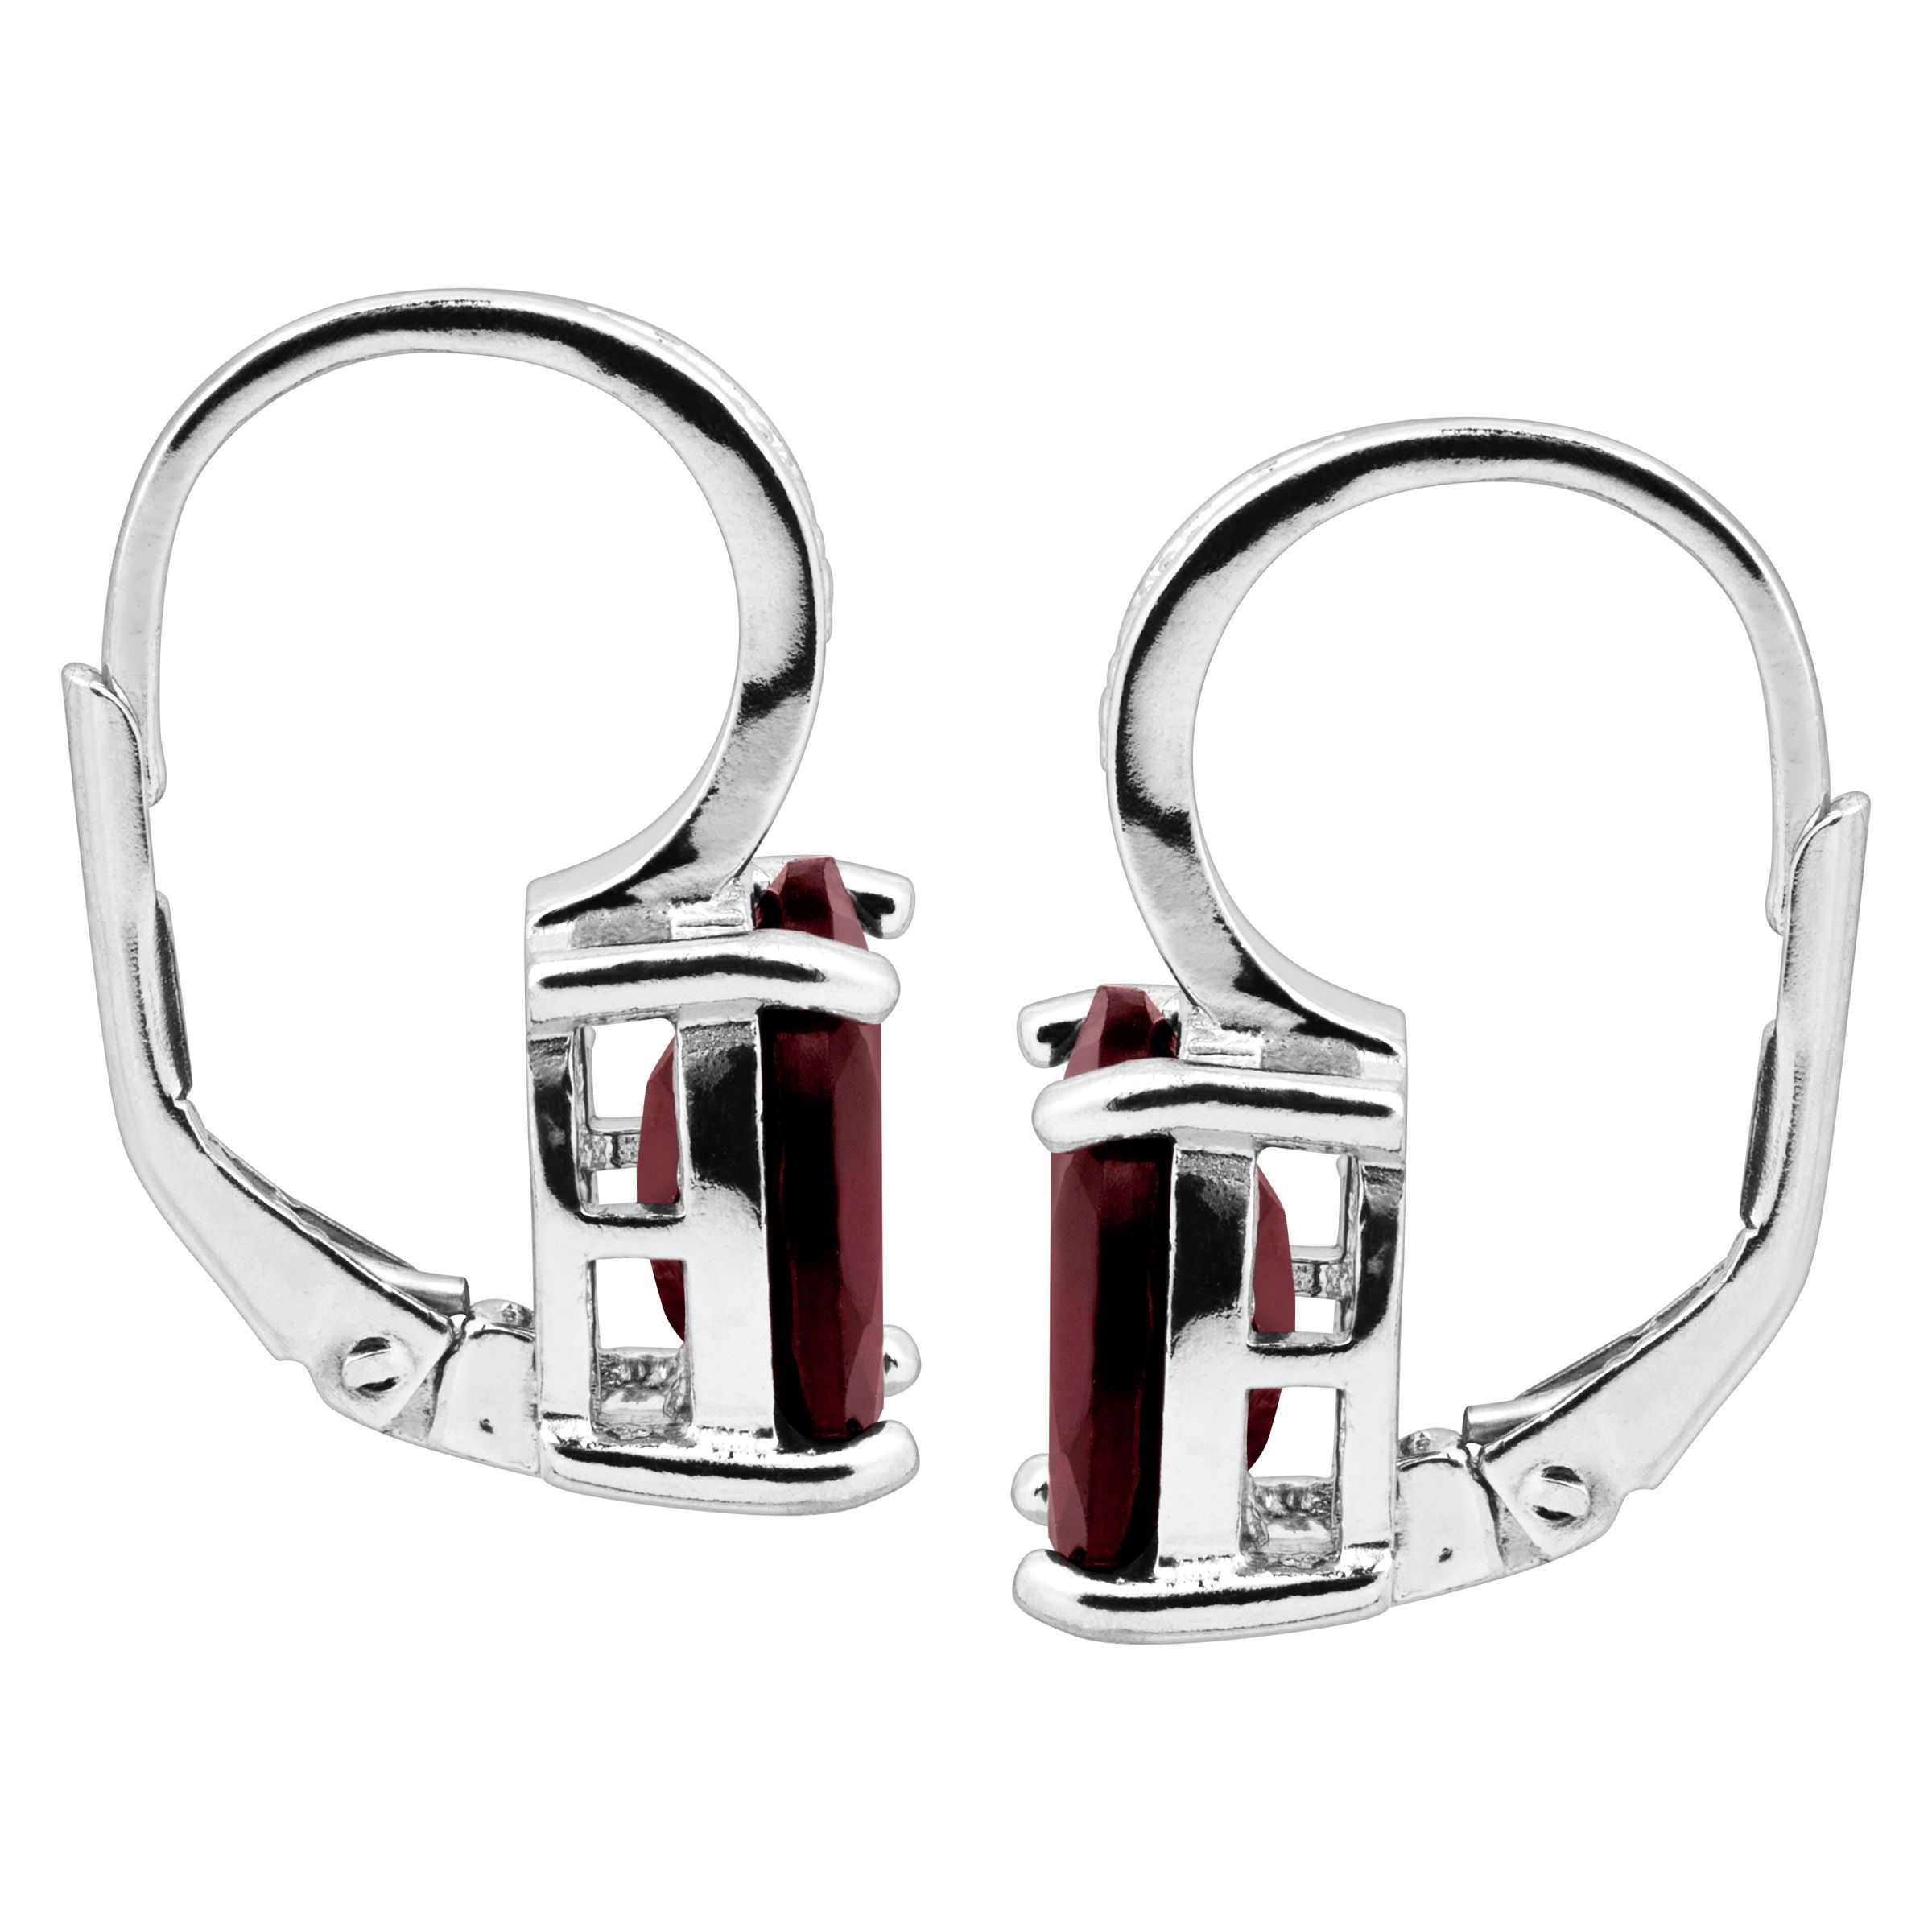 b1ed9e1fc 6 ct Natural Garnet Earrings with Diamonds in Sterling Silver ...